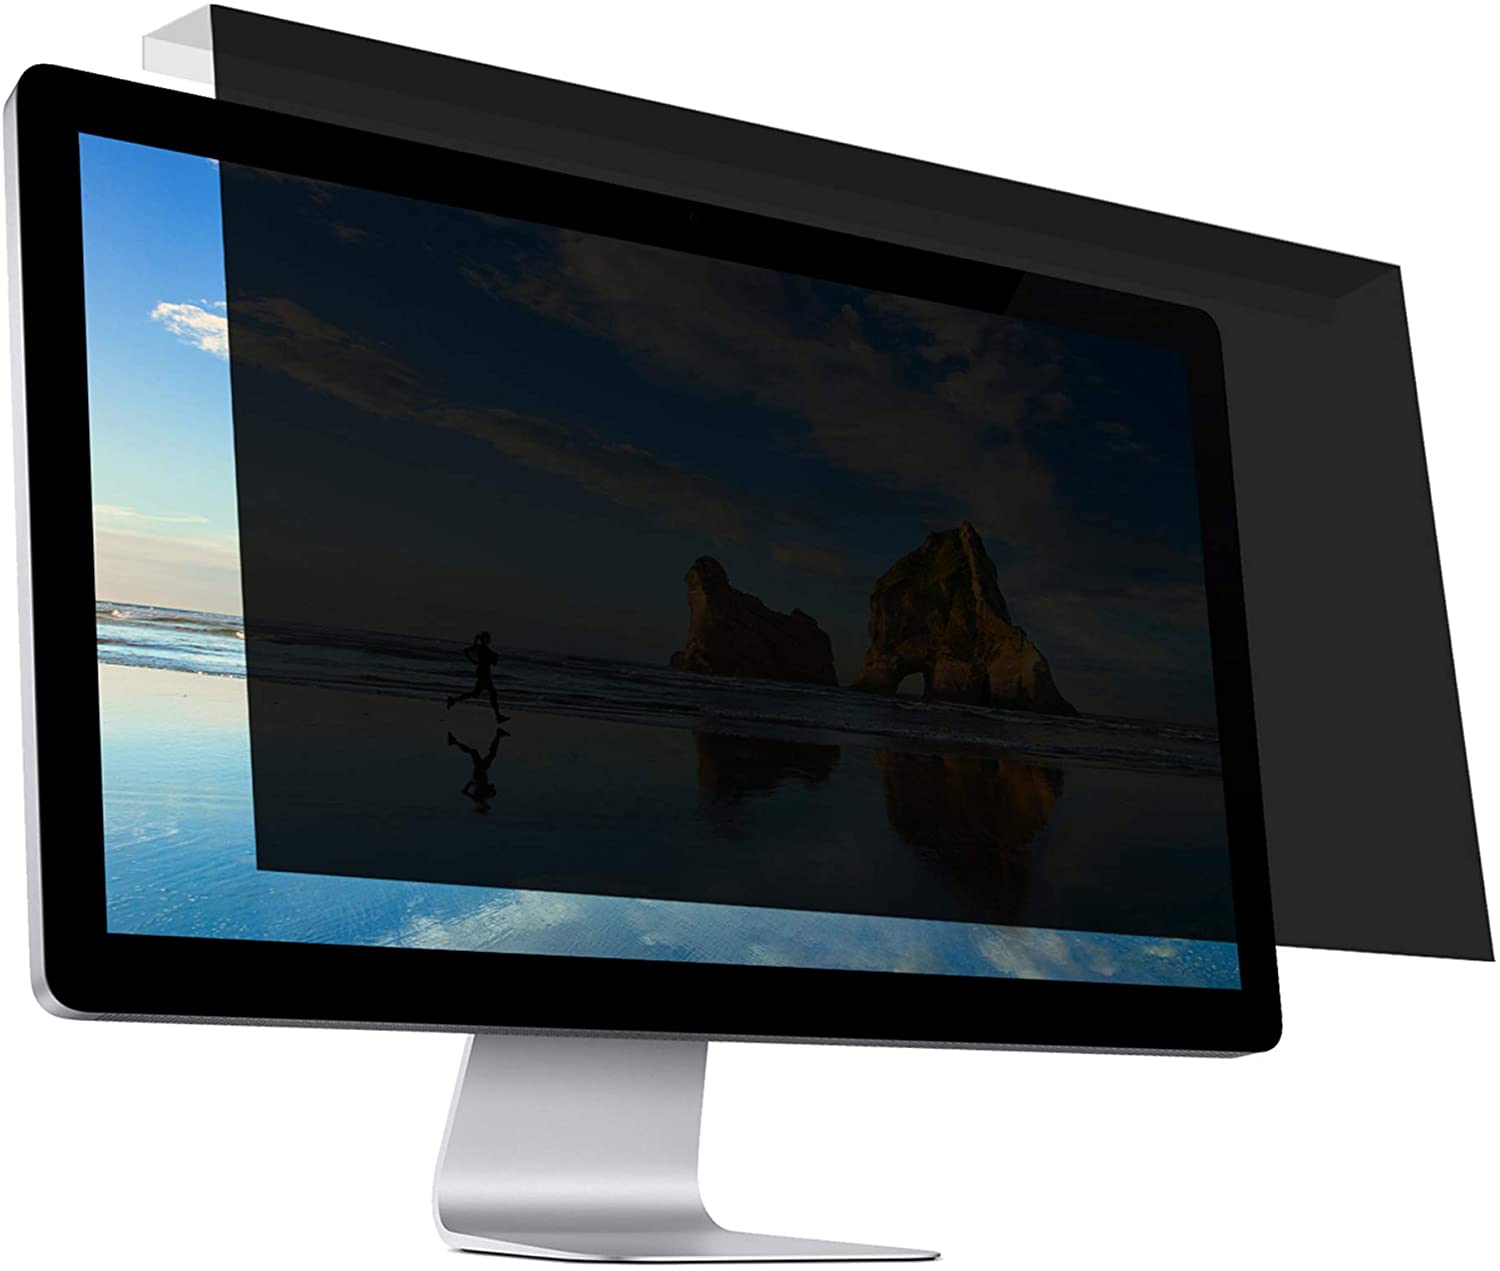 "Hanging Privacy Screen Filter for Widescreen Monitors 23 Inch to 24 Inch (23"",23.6"",23.8"",24"") 16:9/16:10 Aspect Ratio"